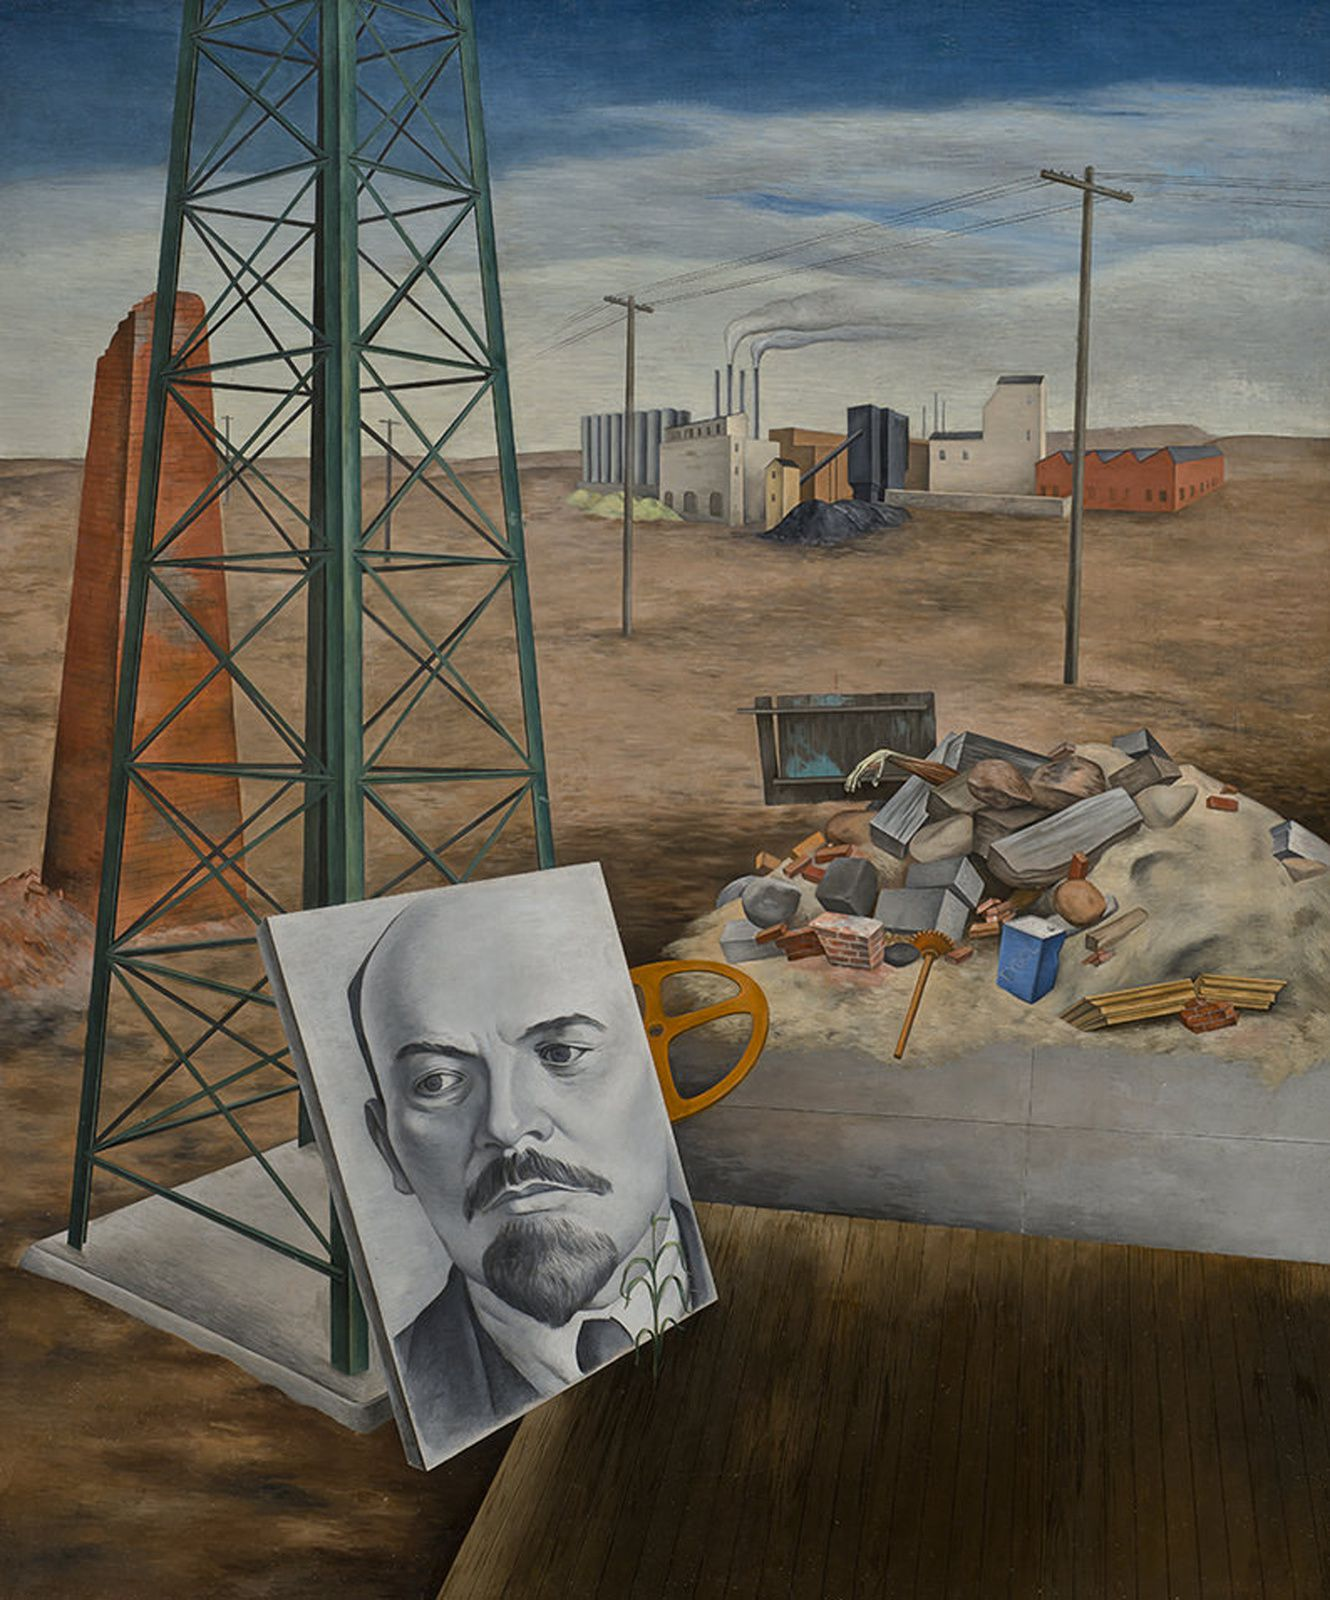 """Phoenix (Portrait in the Desert&#x3B; Lenin"", 1935 de O. Louis GUGLIELMI - Courtesy Sheldon Museum of Art"